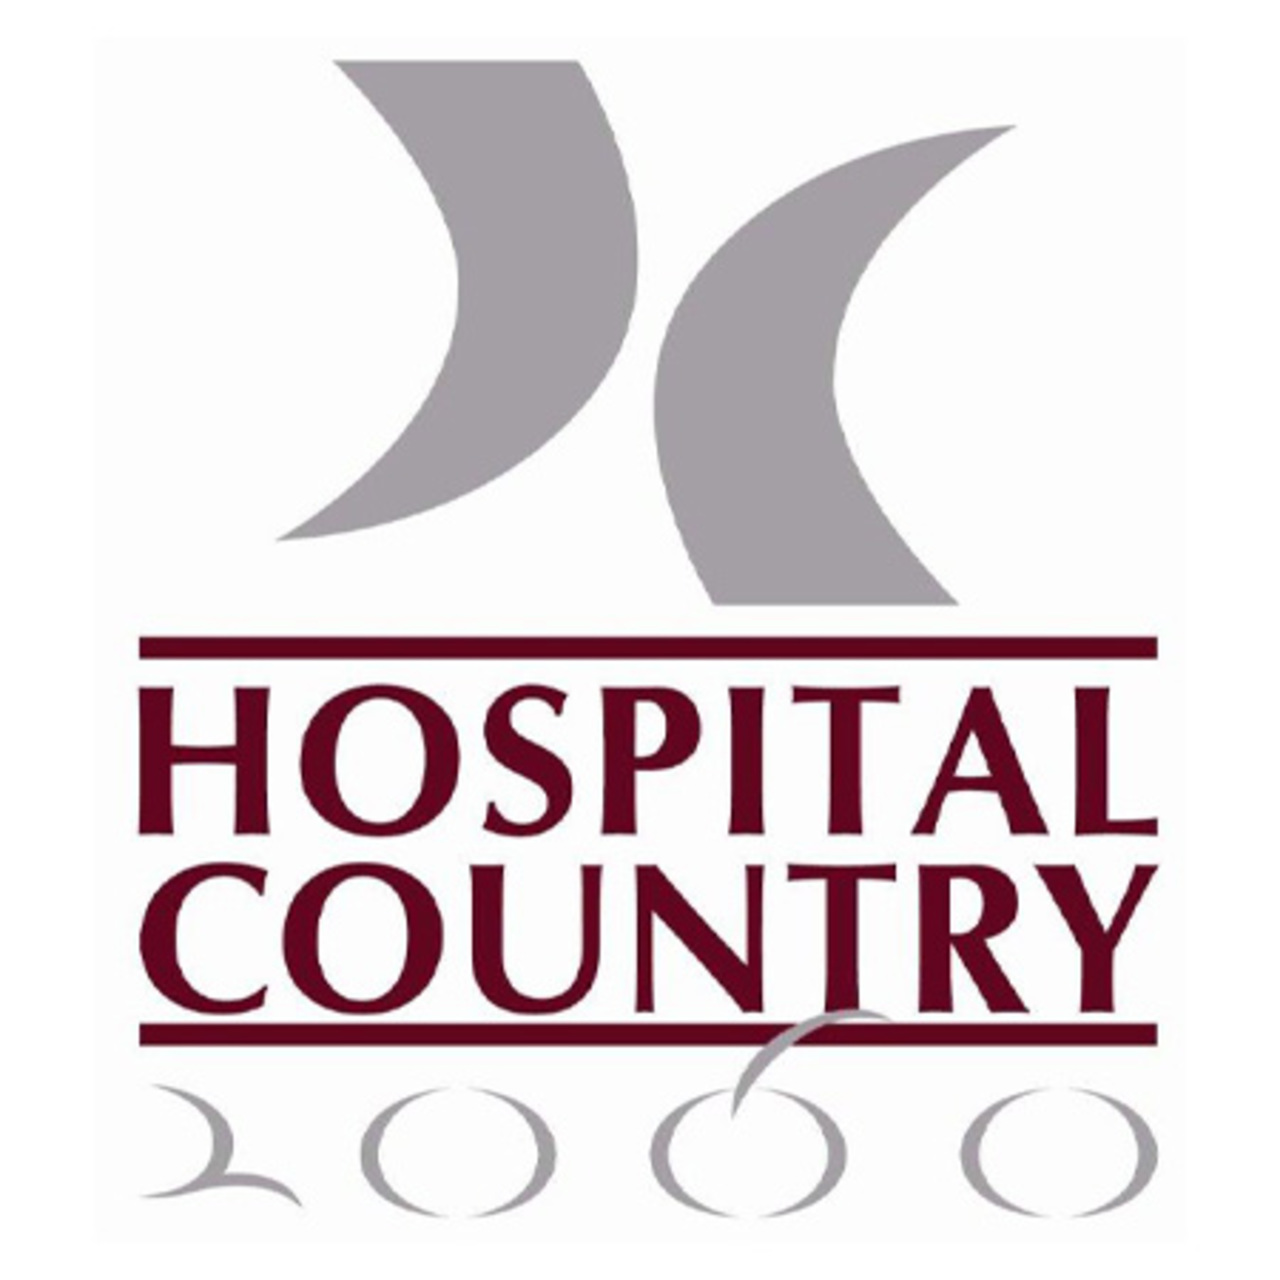 Hospital Country